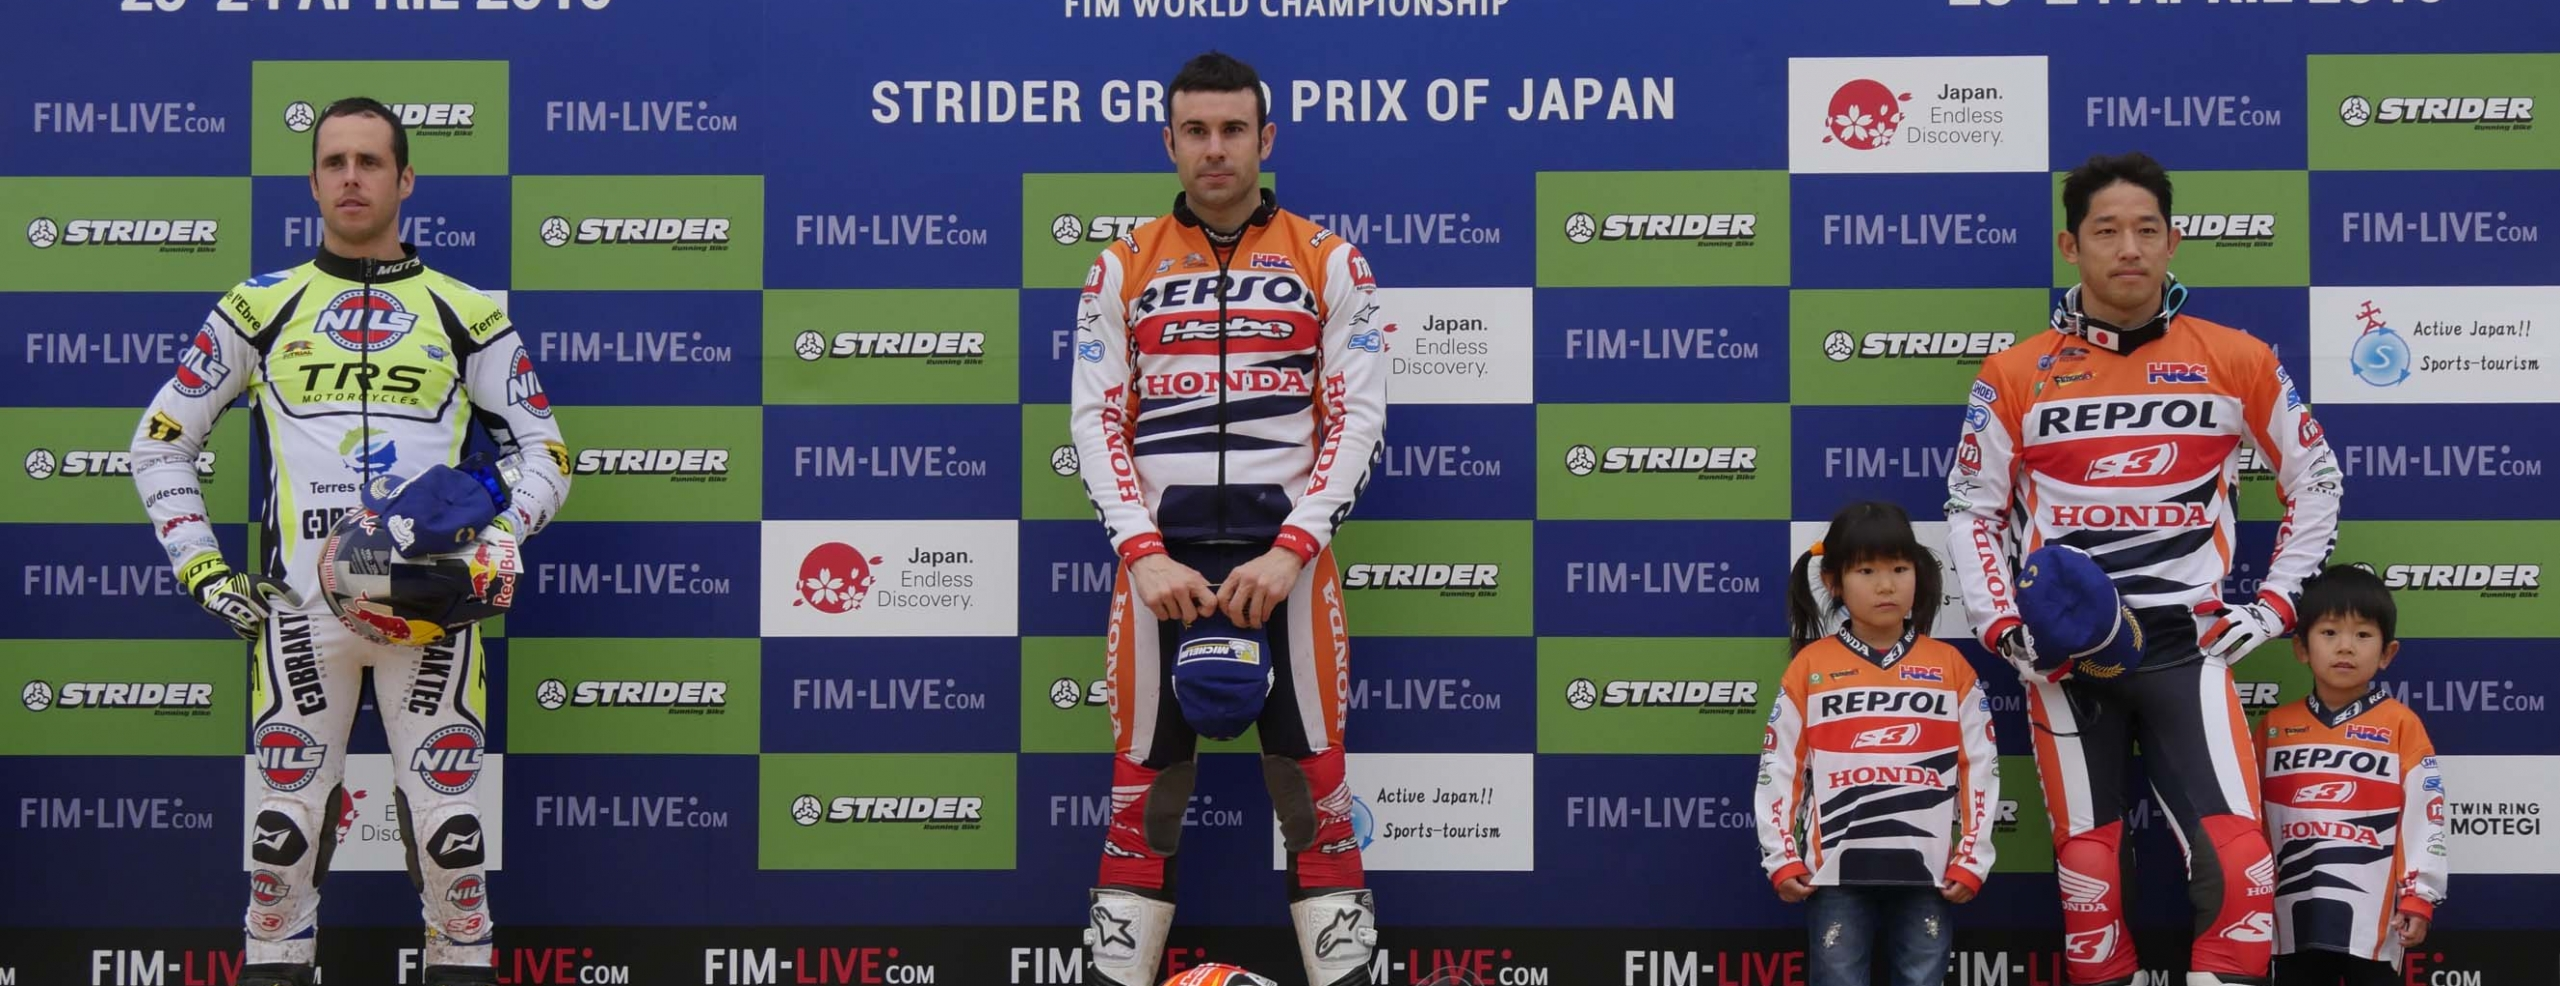 Toni Bou in Japan, like at home. Fujinami celebrates 300 trials with a podium place.